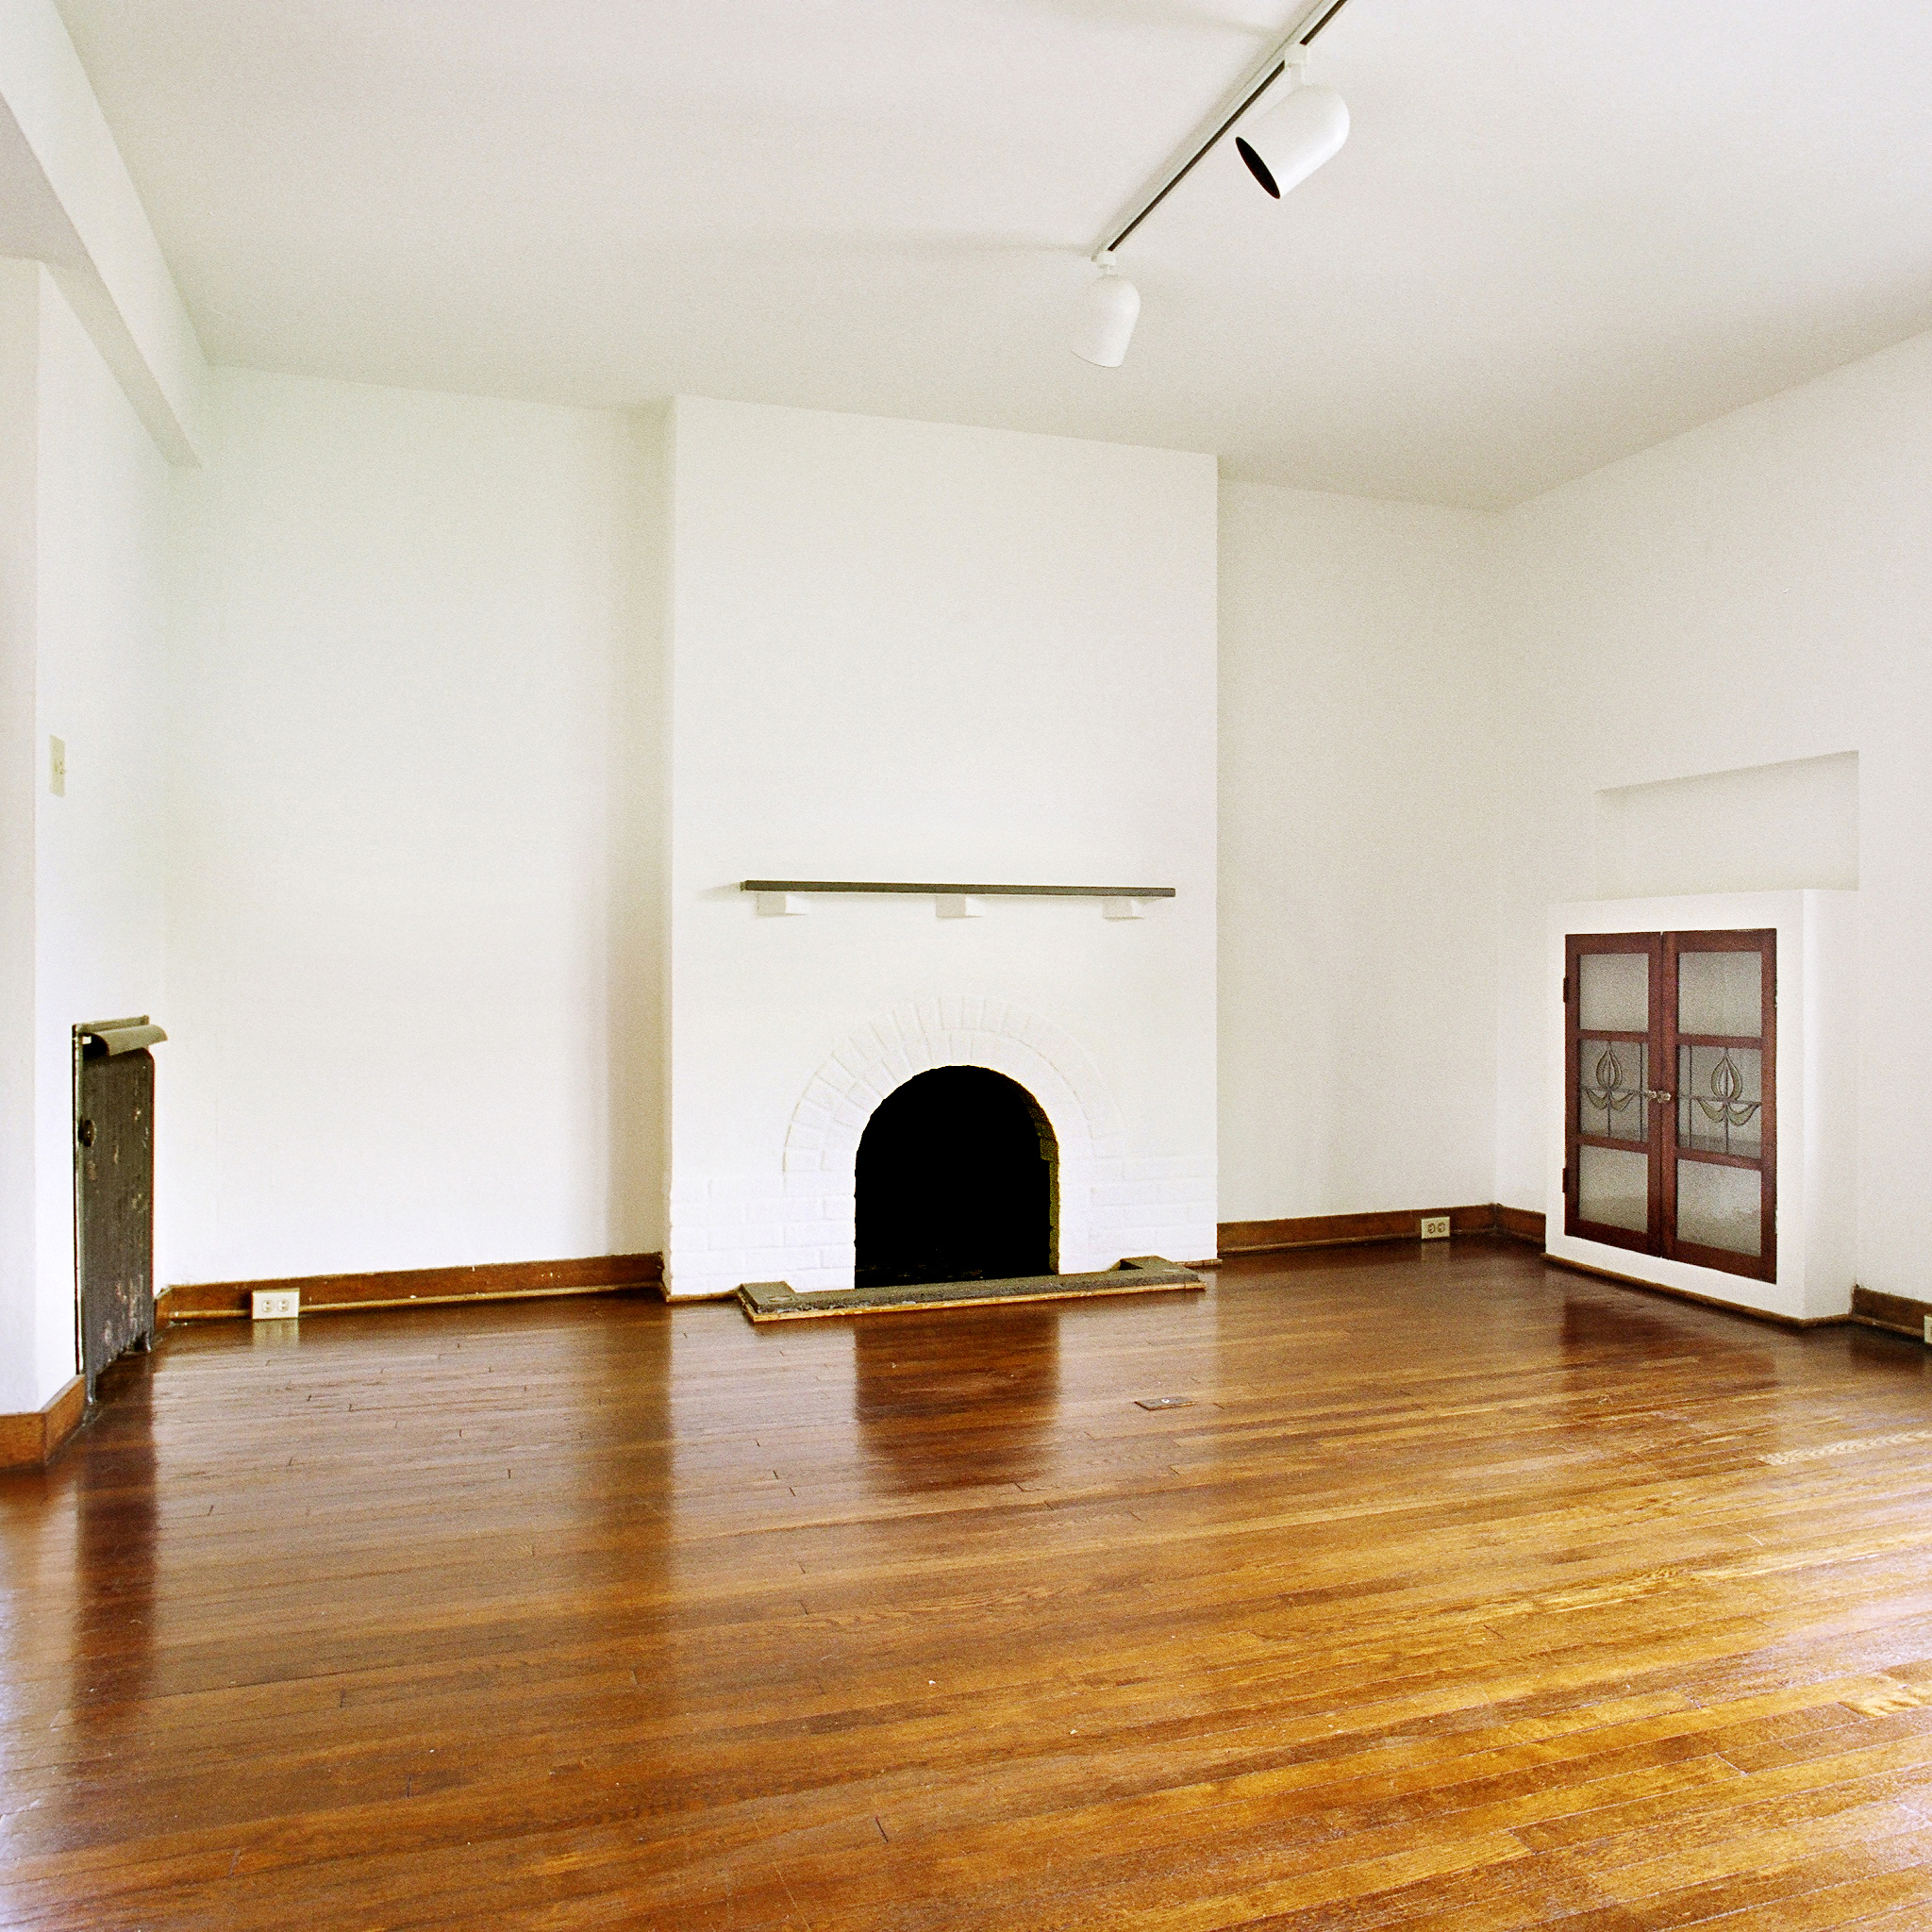 interior of 342 S. Highland Ave, Apt. 15A 3